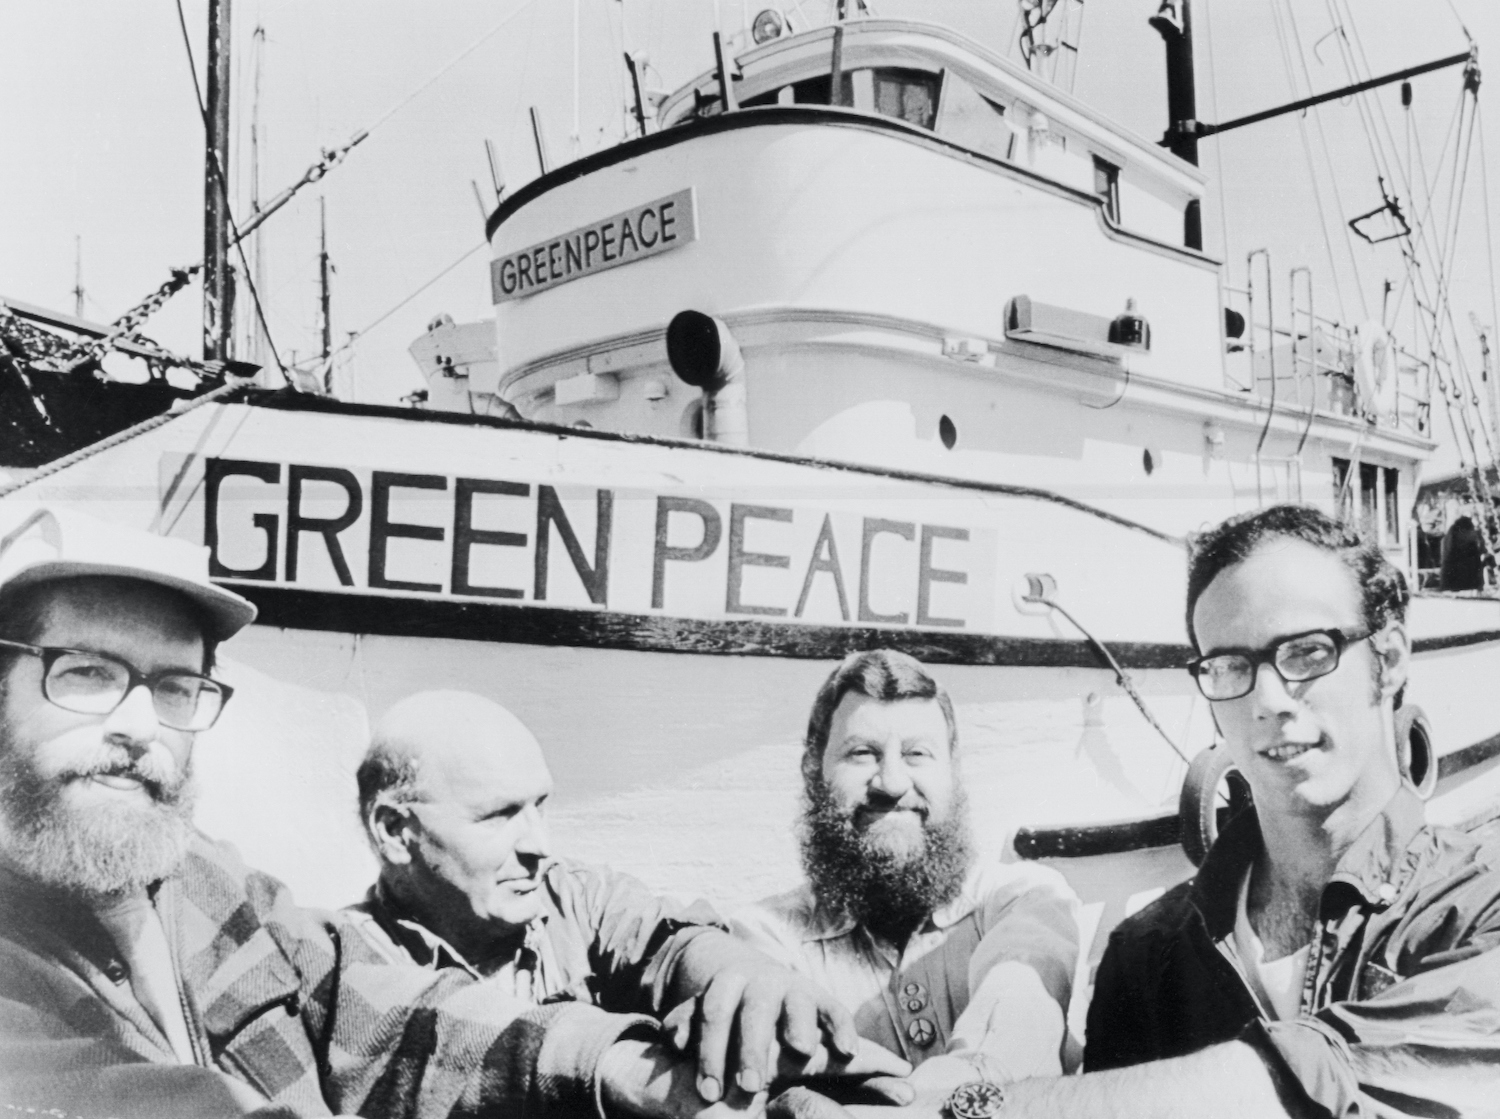 Men Seated near Greenpeace Vessel